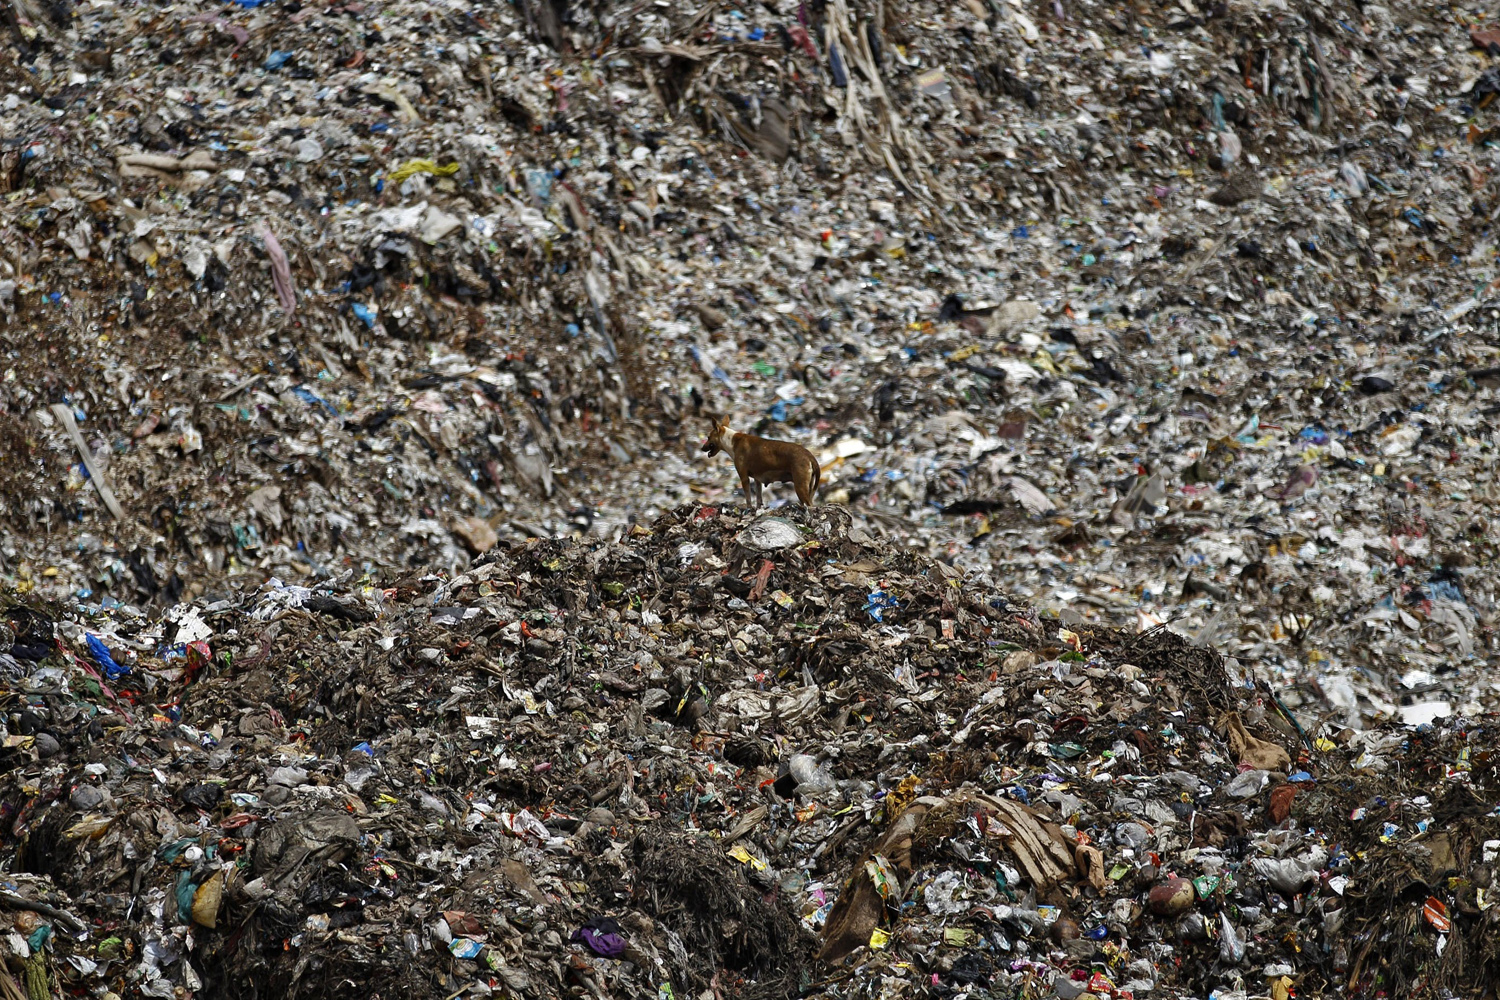 Aug. 26, 2014. A stray dog stands on a mound of garbage at a landfill site on the outskirts of Bangalore, India.